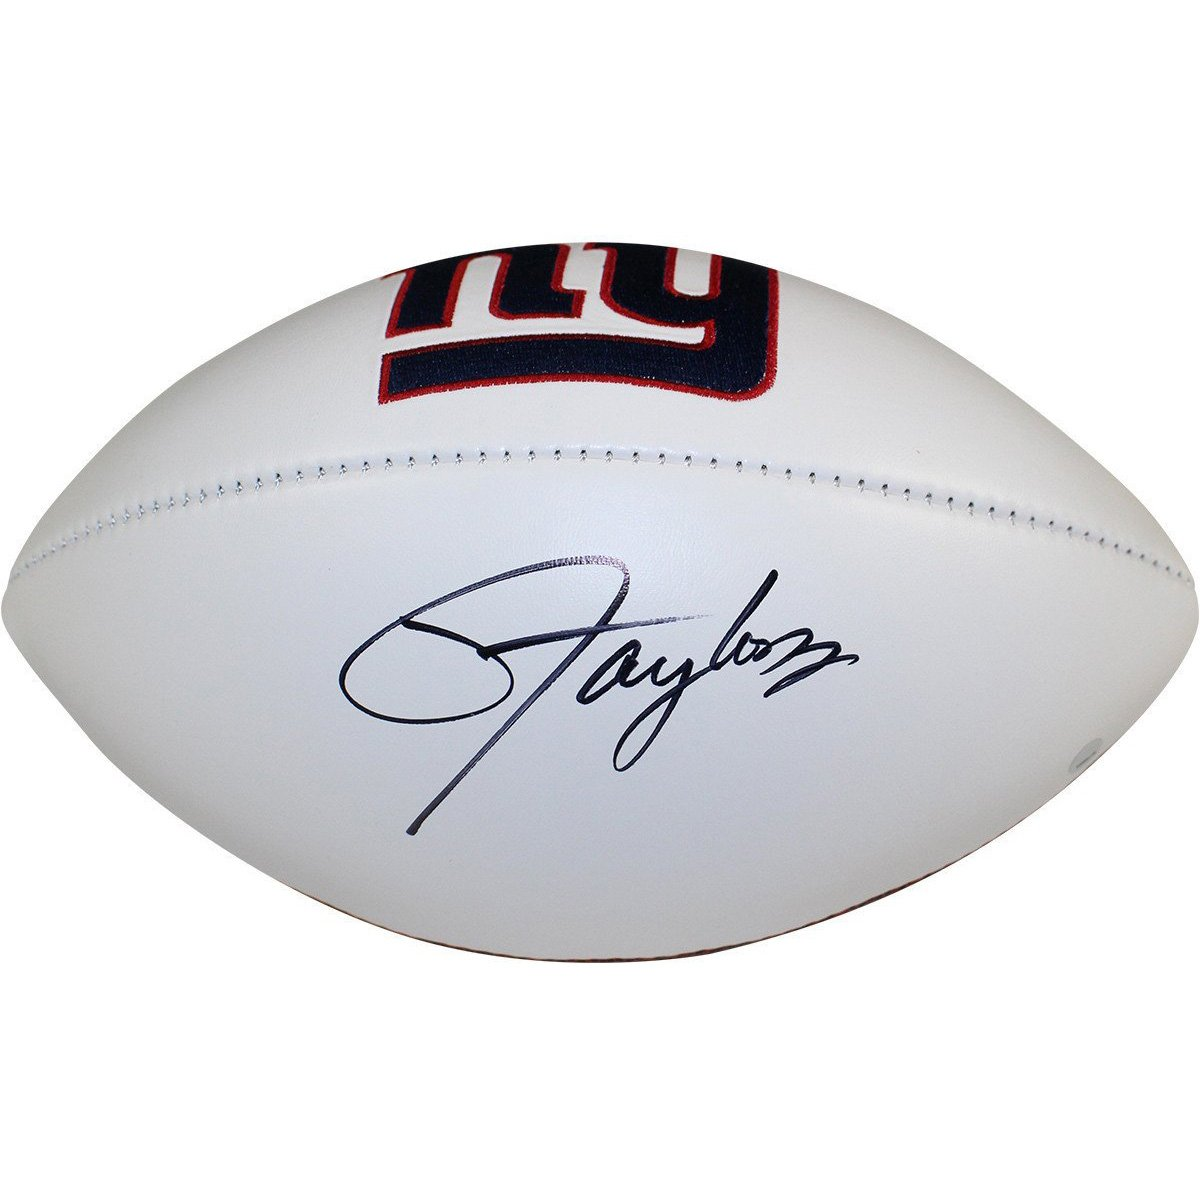 6eac7a1dd Lawrence Taylor Signed New York Giants White Panel Jarden Signature  Football ...